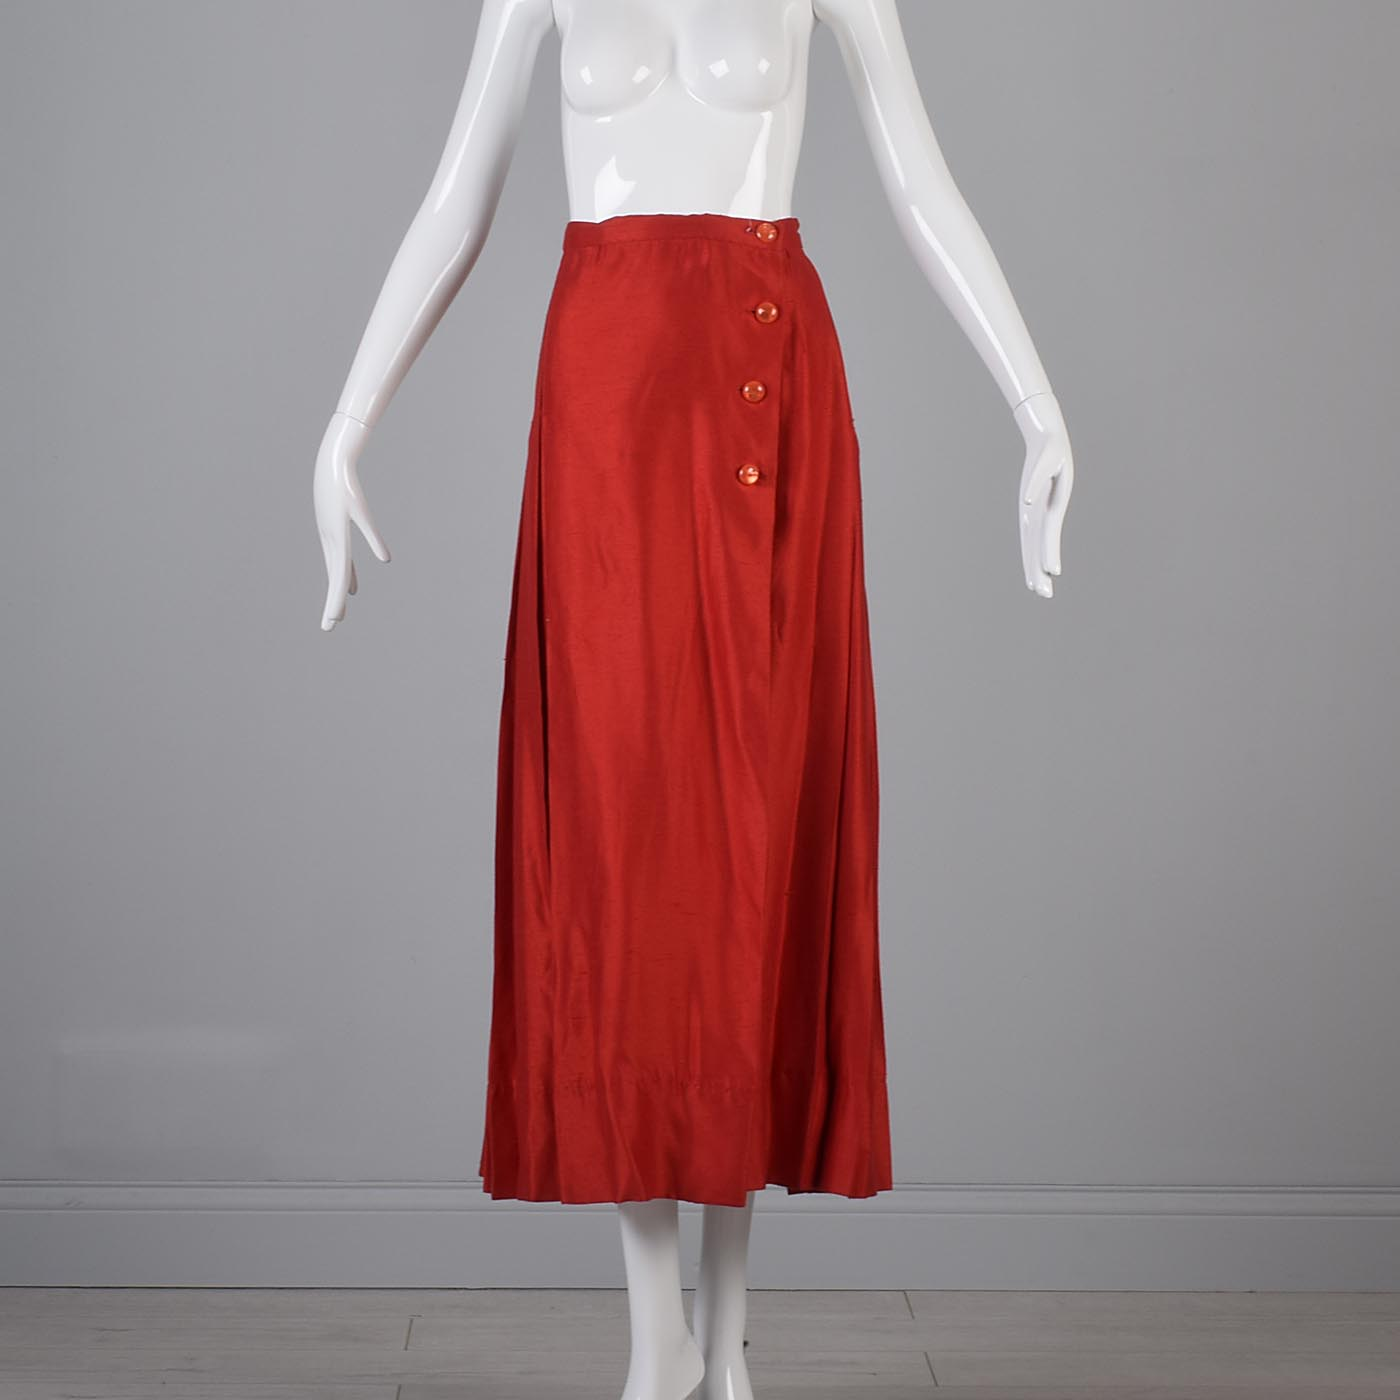 4f597d5f36 Details about Large Vintage 1980s 80s Red Maxi Skirt Holiday Hostess Wrap  Pleated